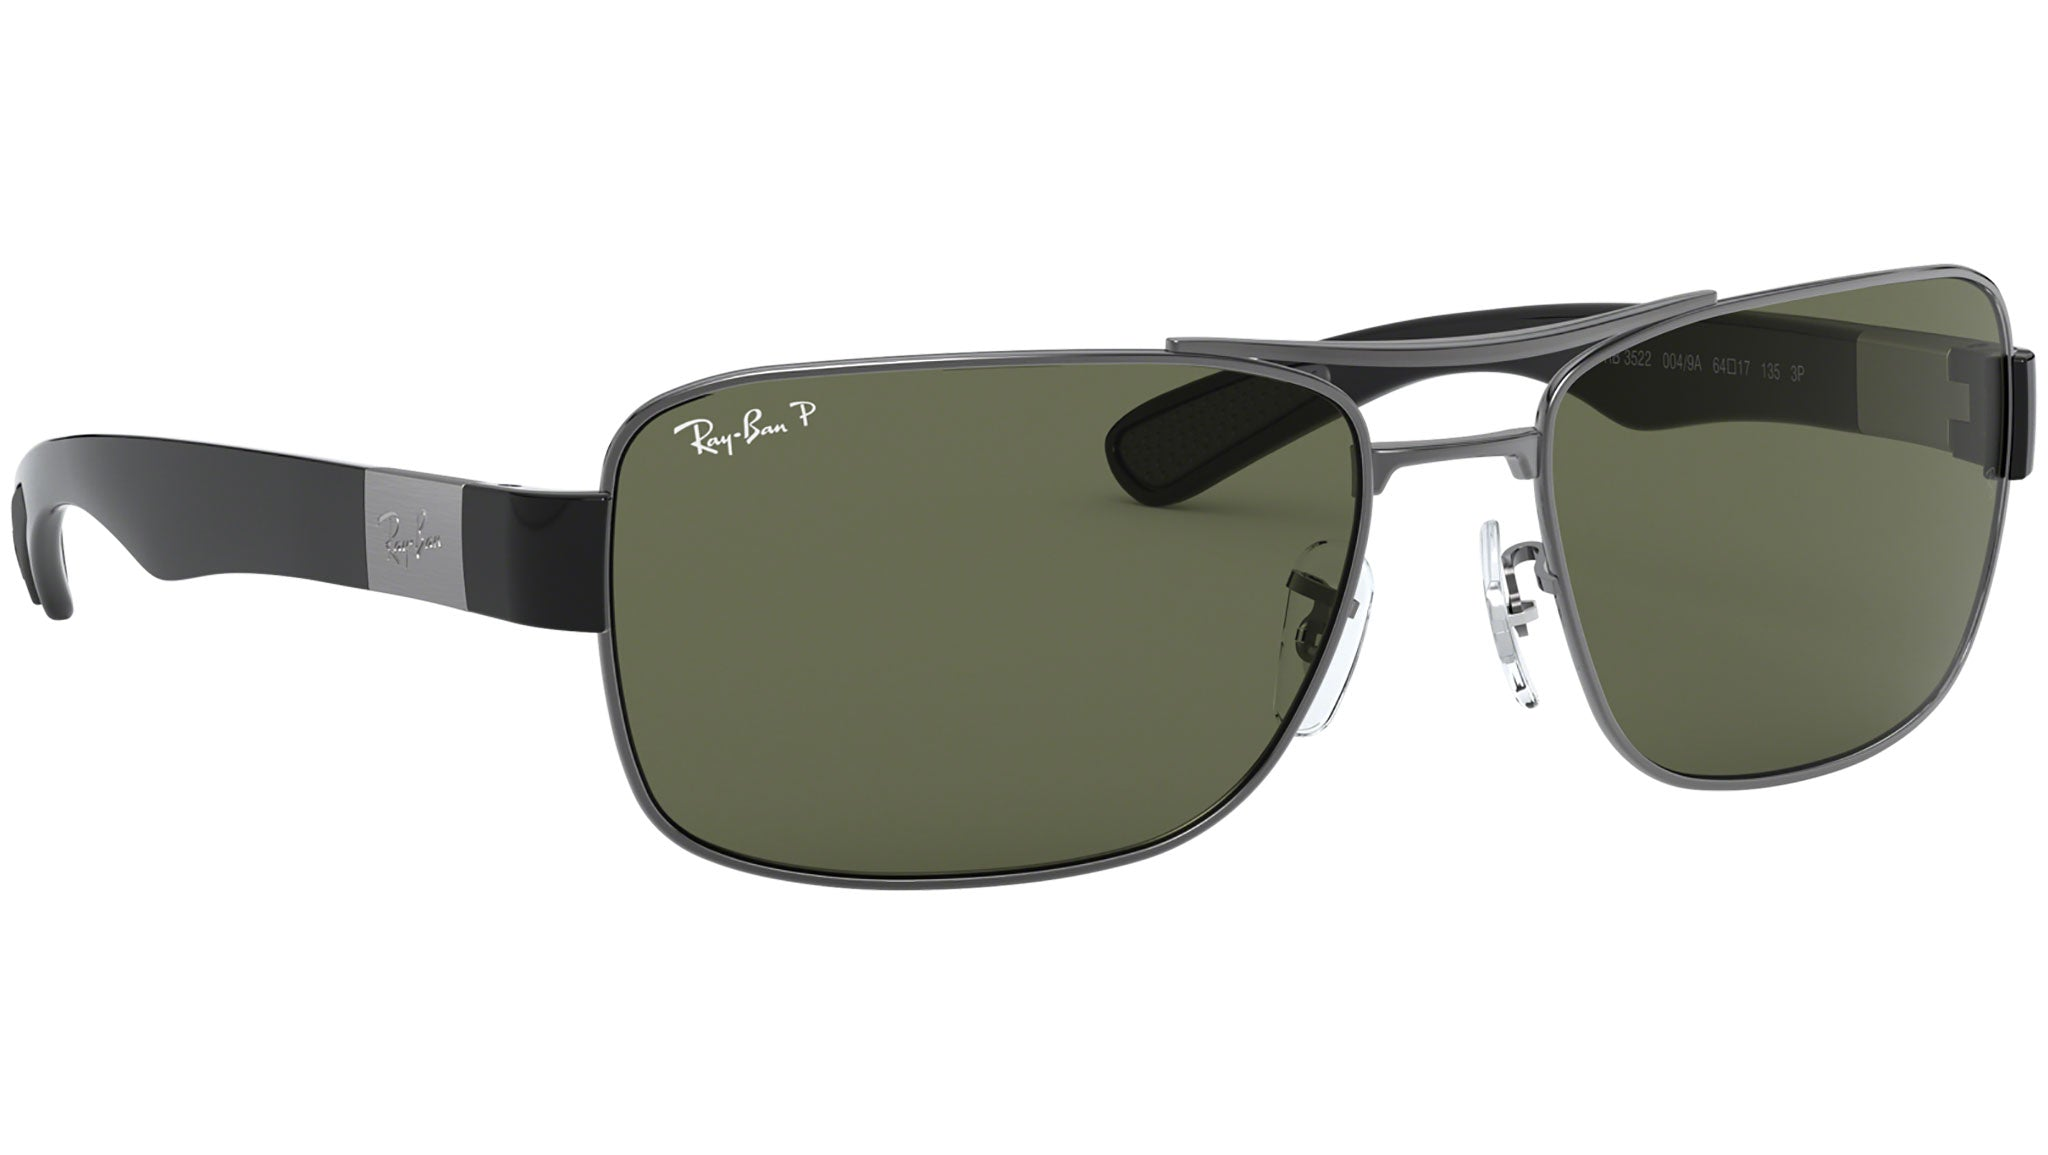 RB3522 gunmetal polarized